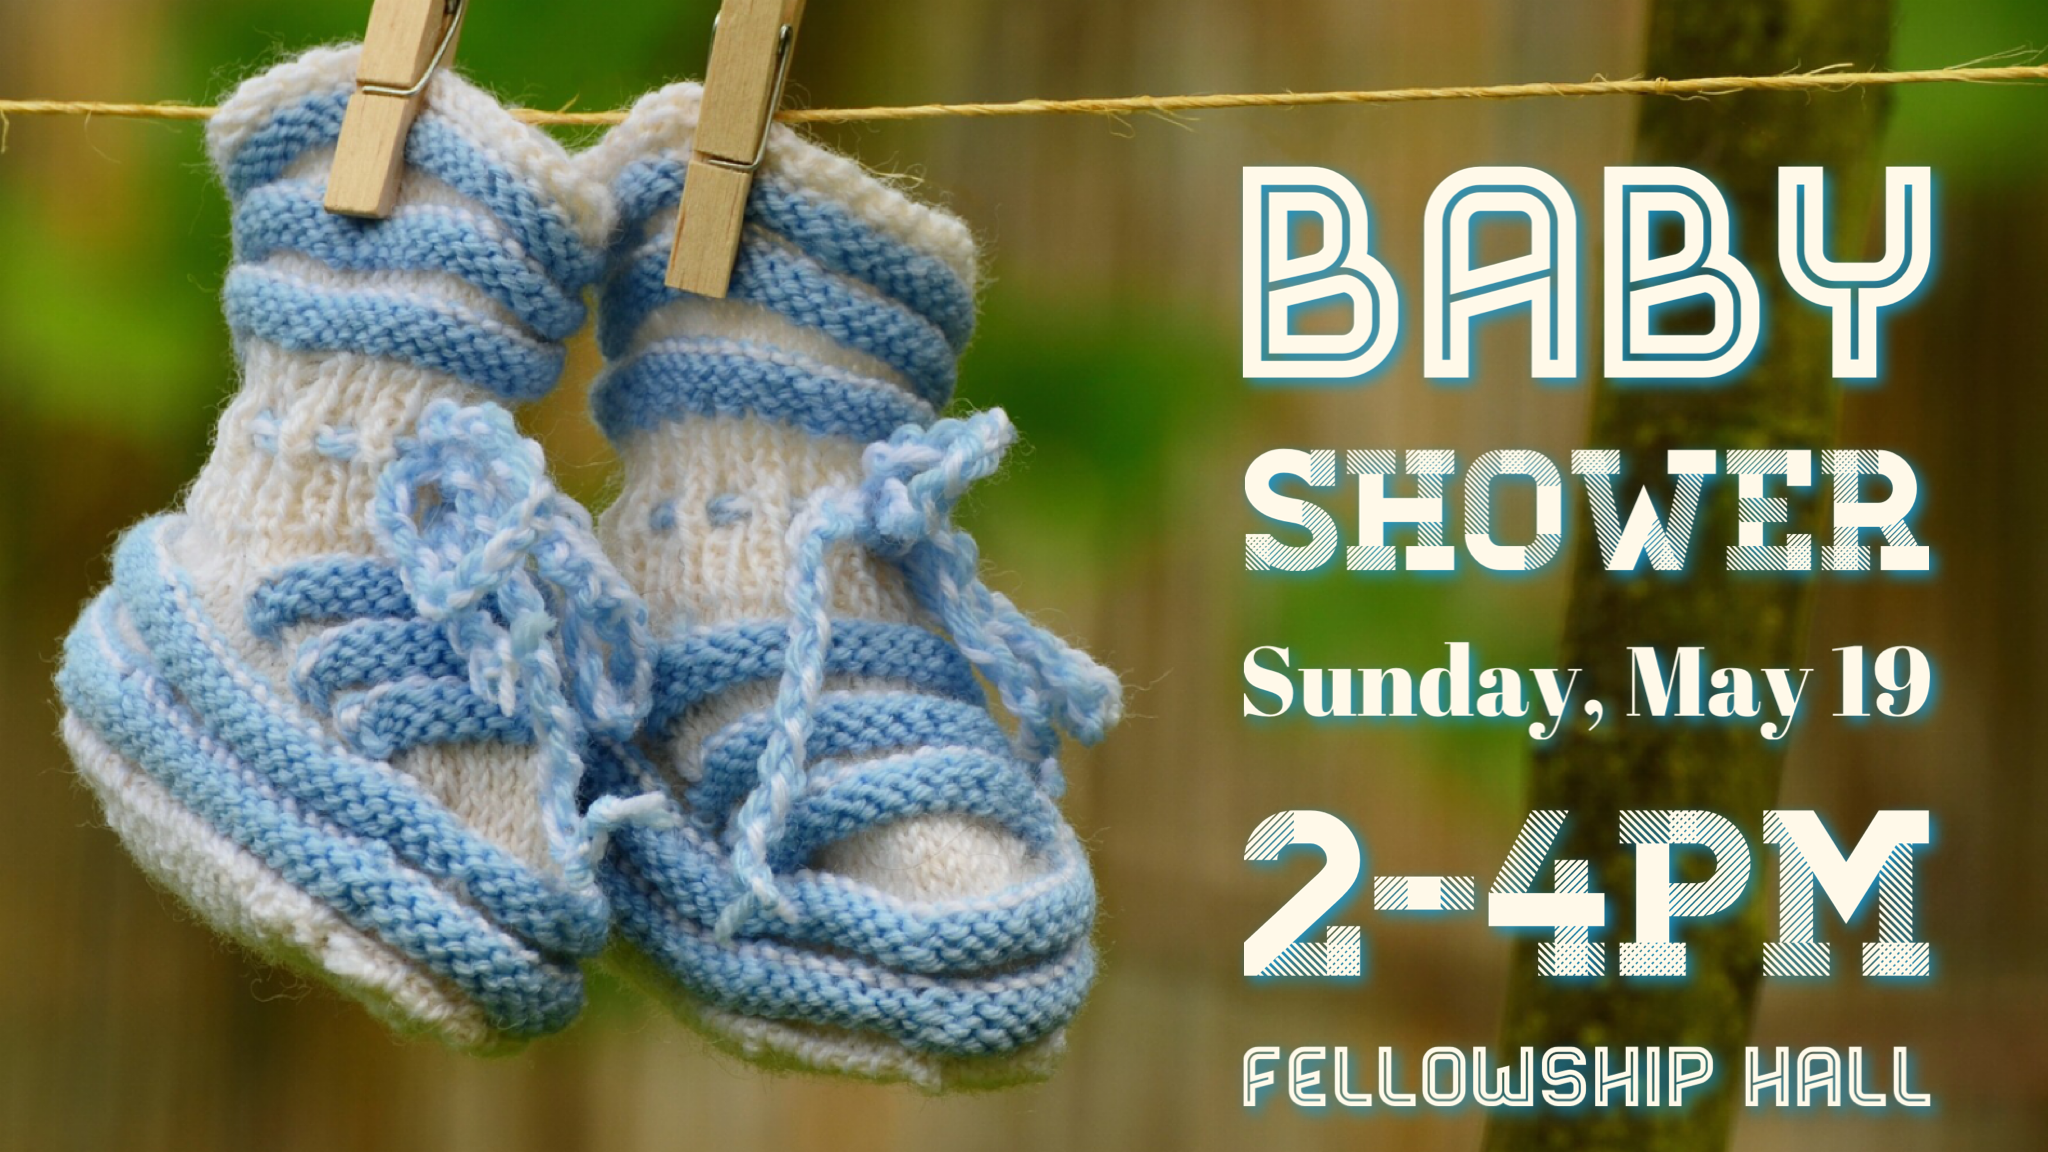 Baby Shower - Courtney.PNG image